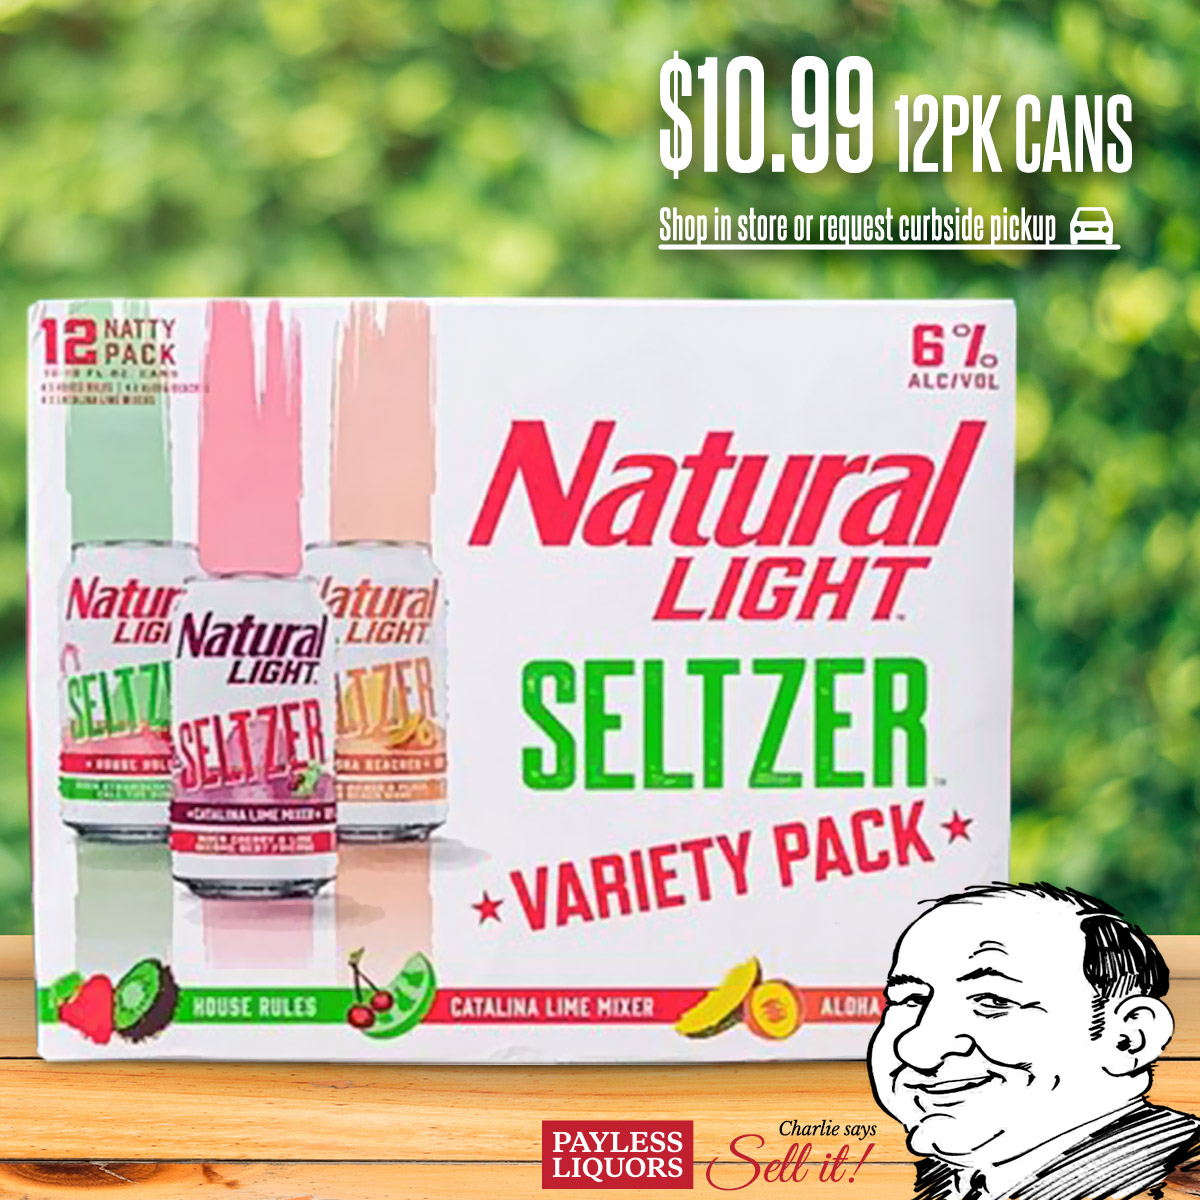 Natural Light Variety 12pk Cans